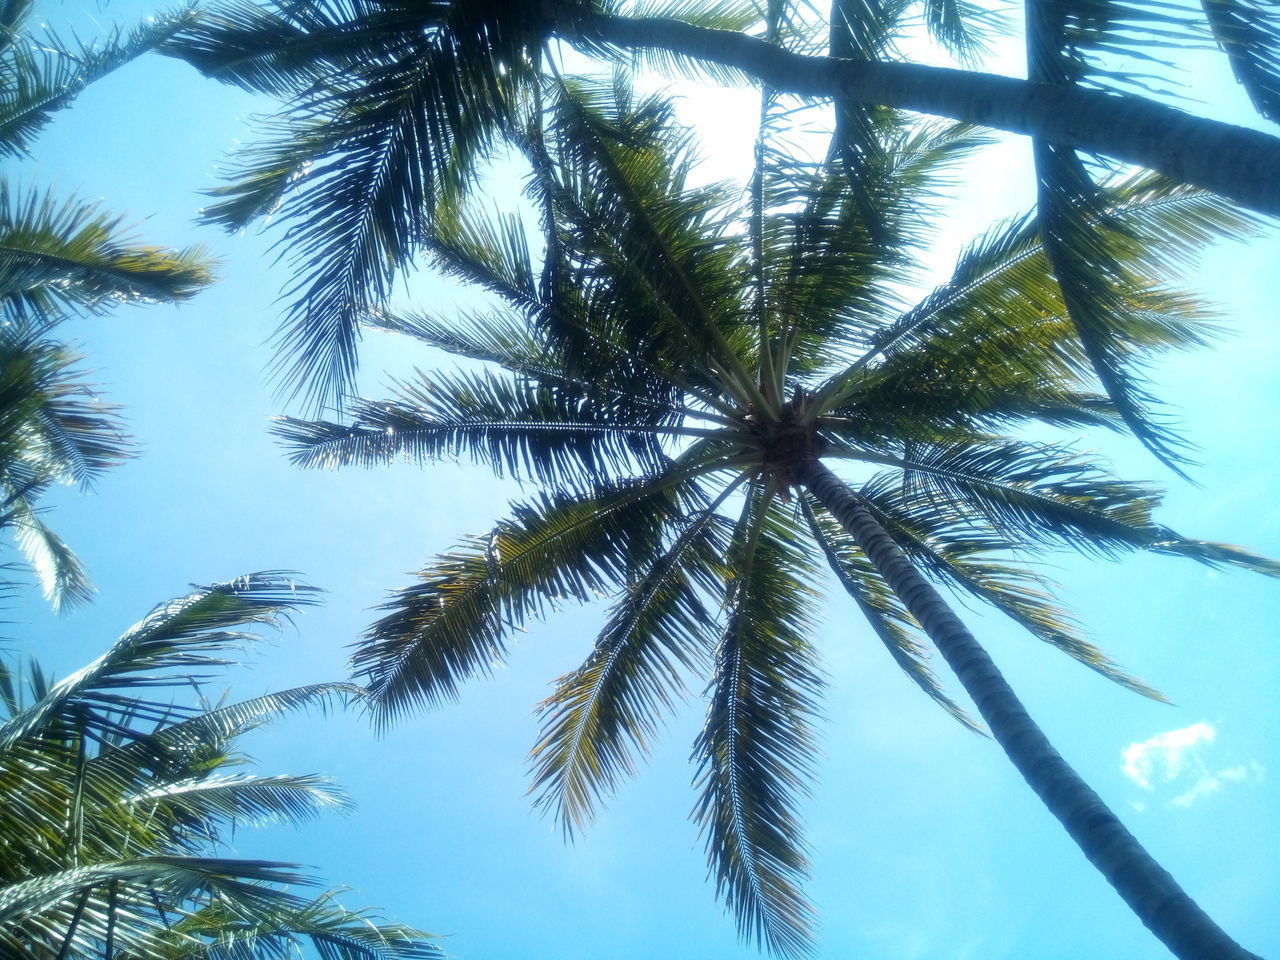 palm tree, low angle view, tree, nature, growth, sky, no people, day, beauty in nature, tree trunk, outdoors, scenics